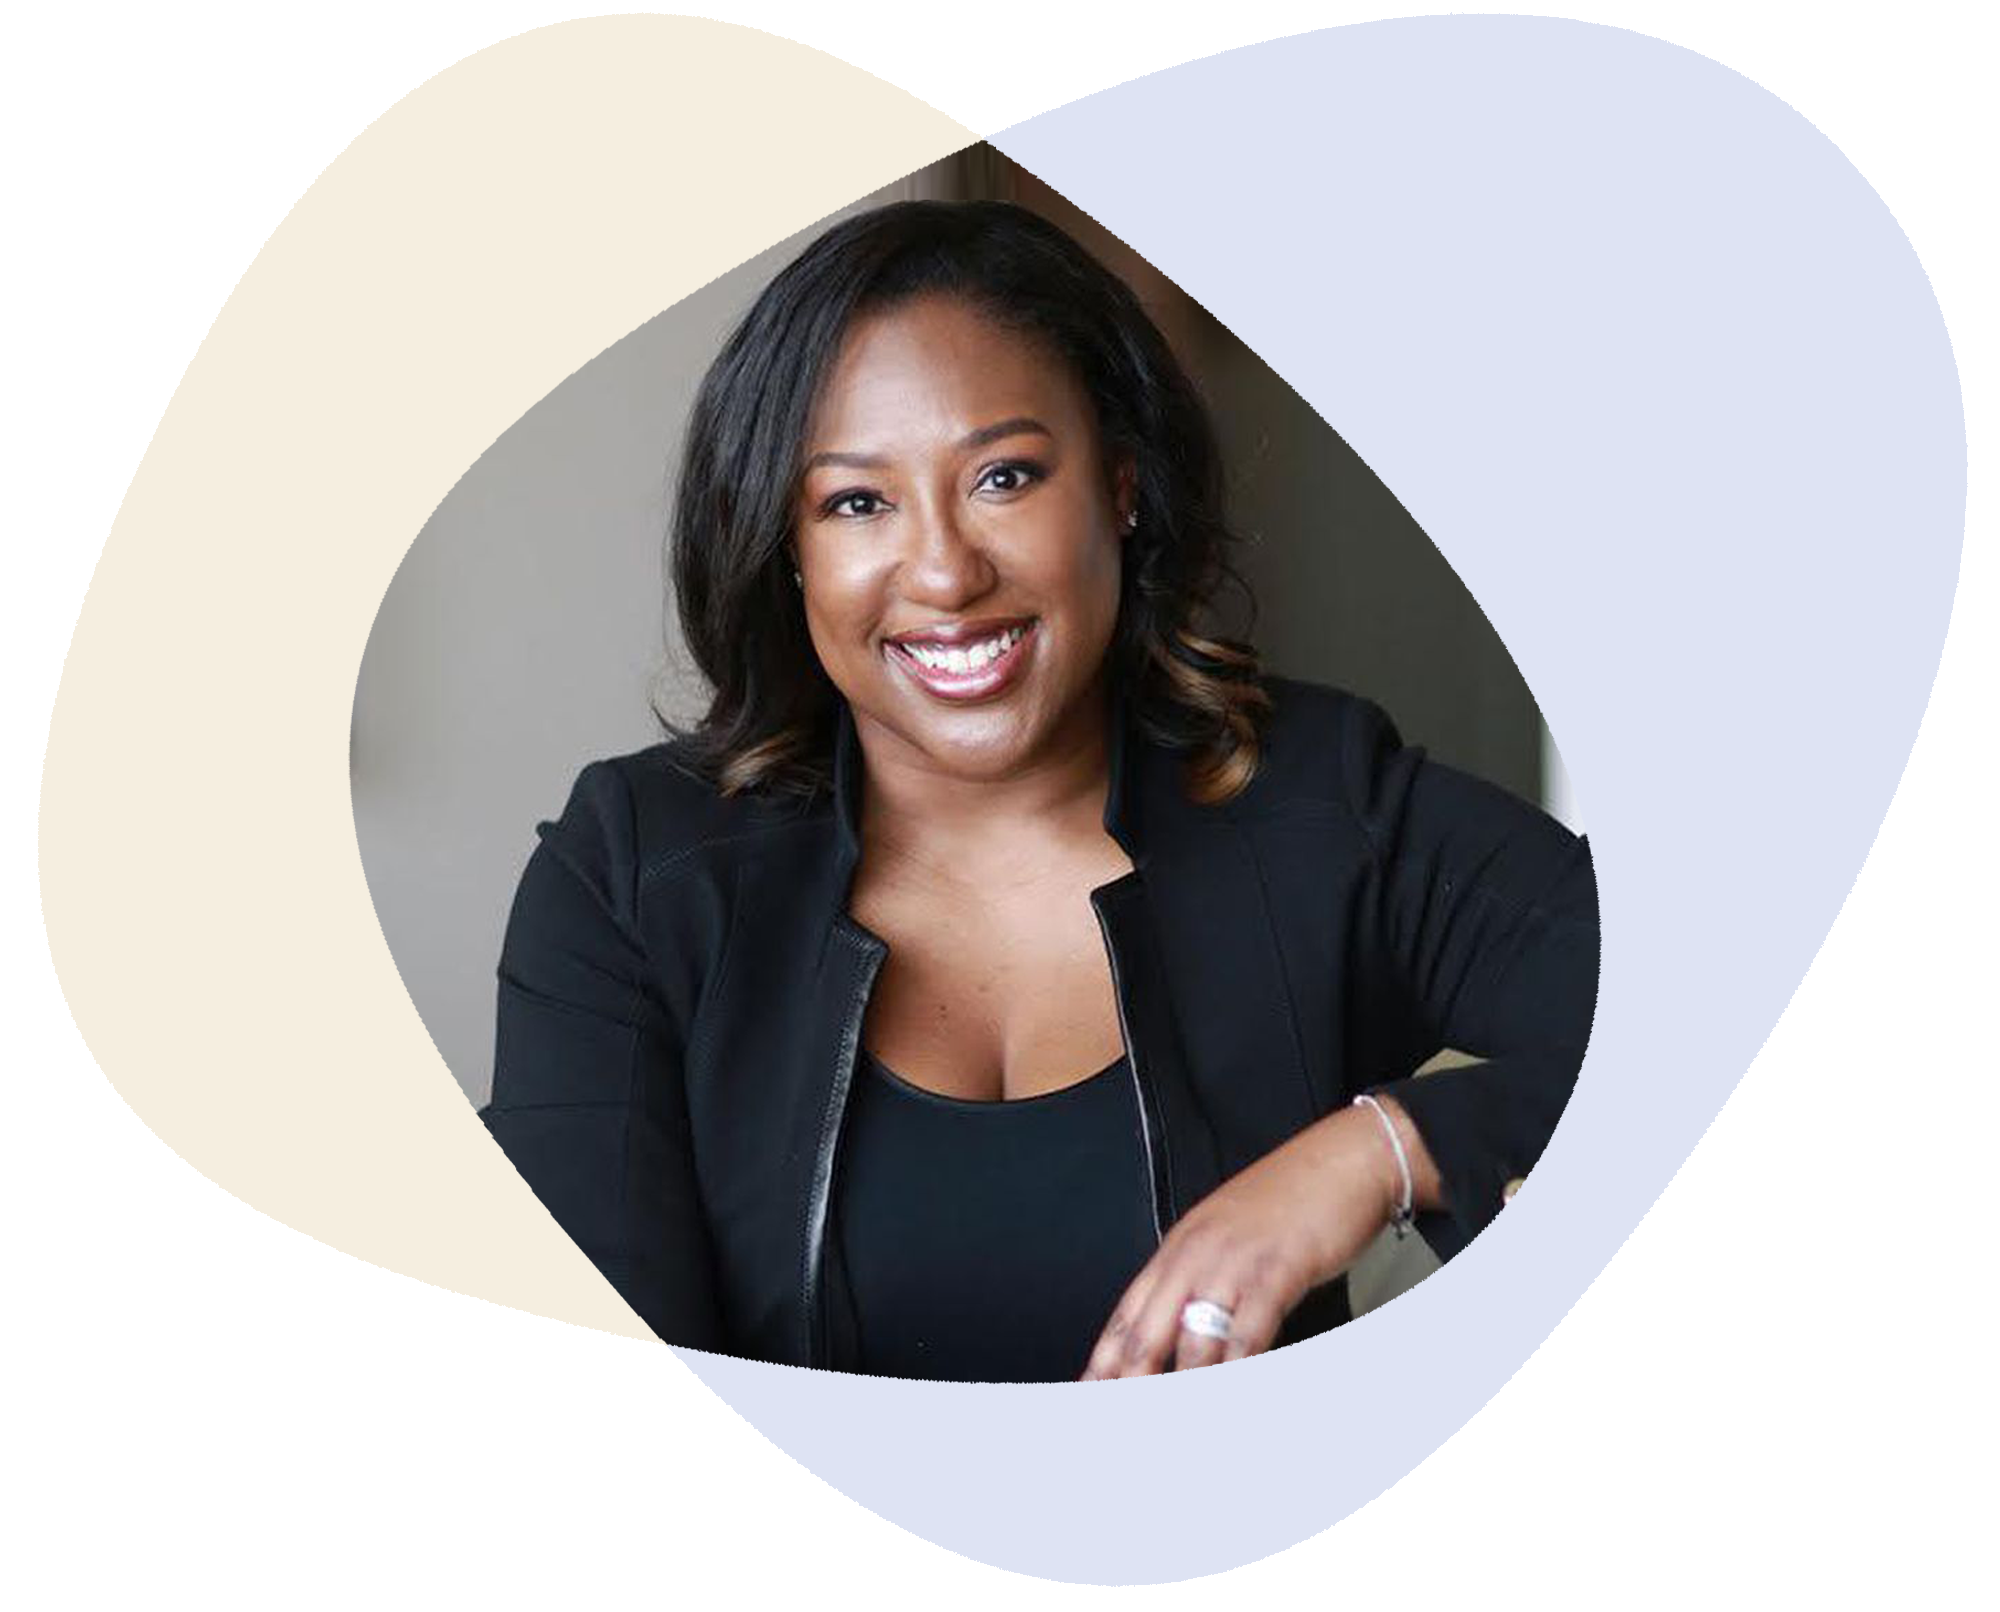 Anddria Clack-Rogers Varnado, Head of Strategy & Business Development, Williams Sonoma -